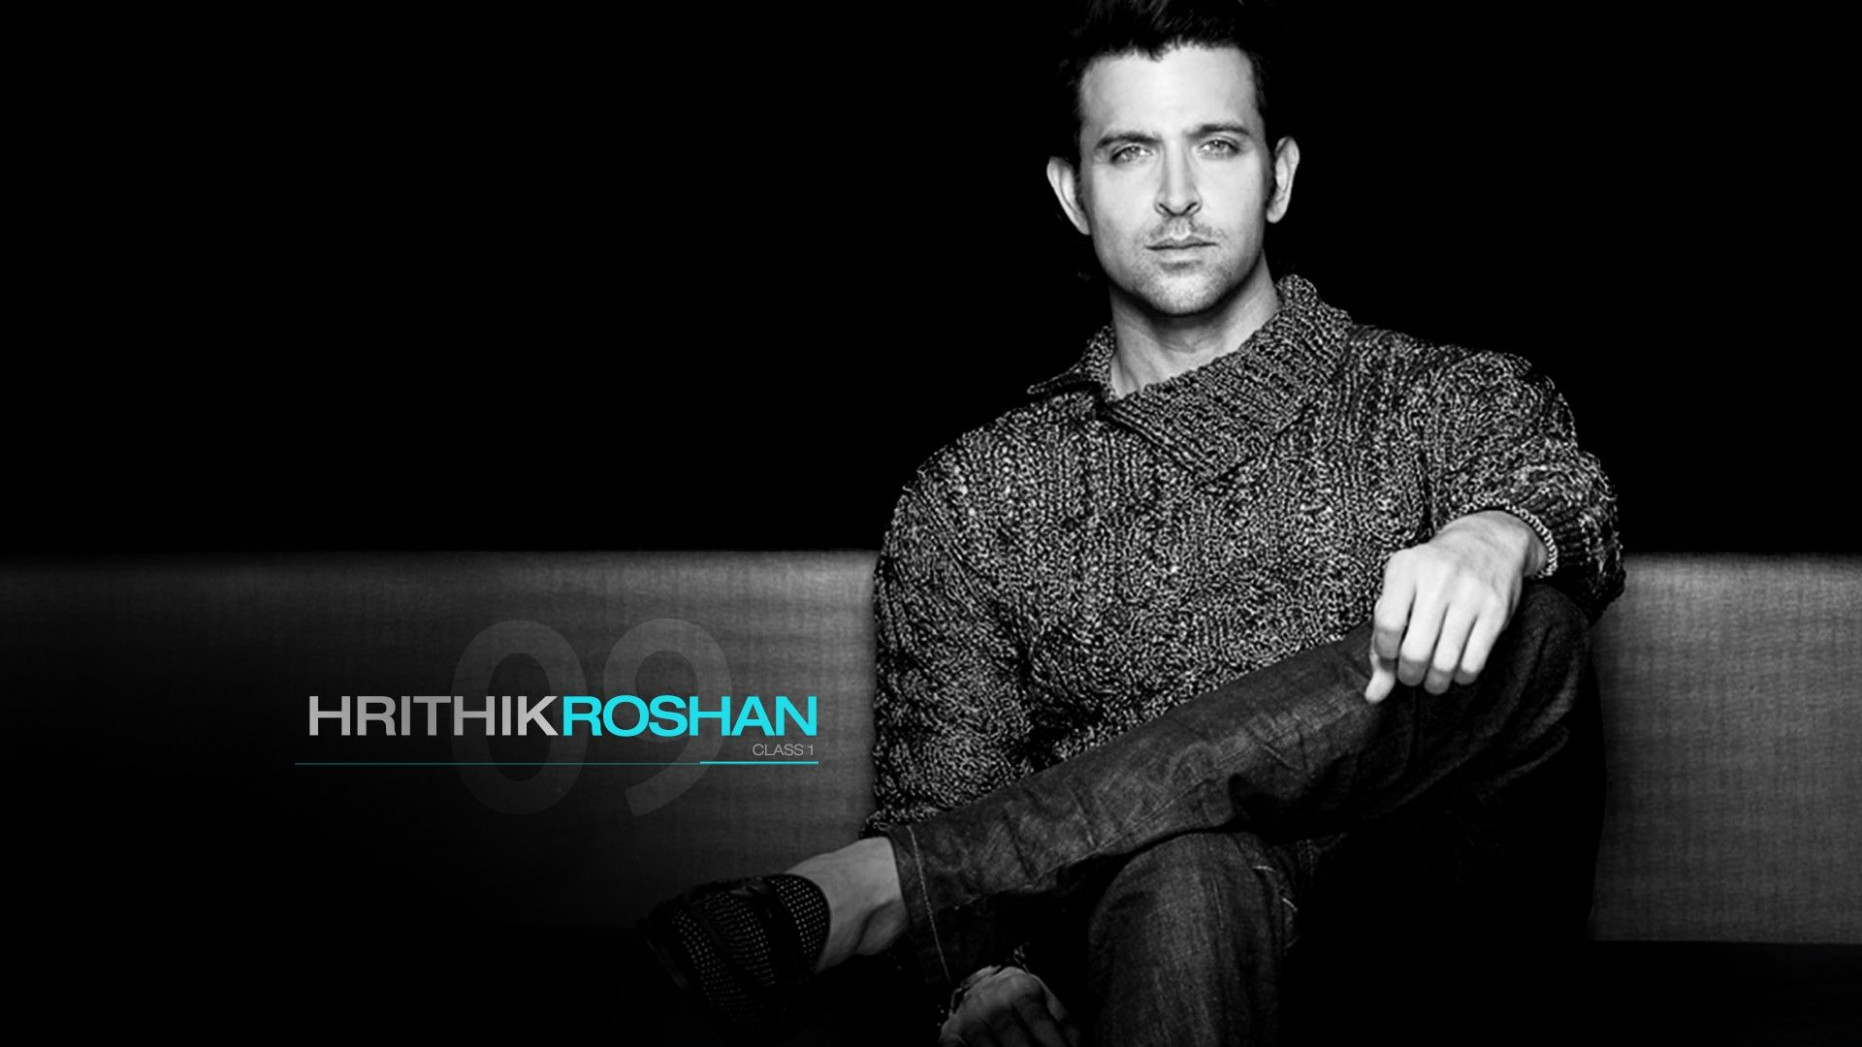 hrithik roshan hd wallpapers free download | Hrithik ...